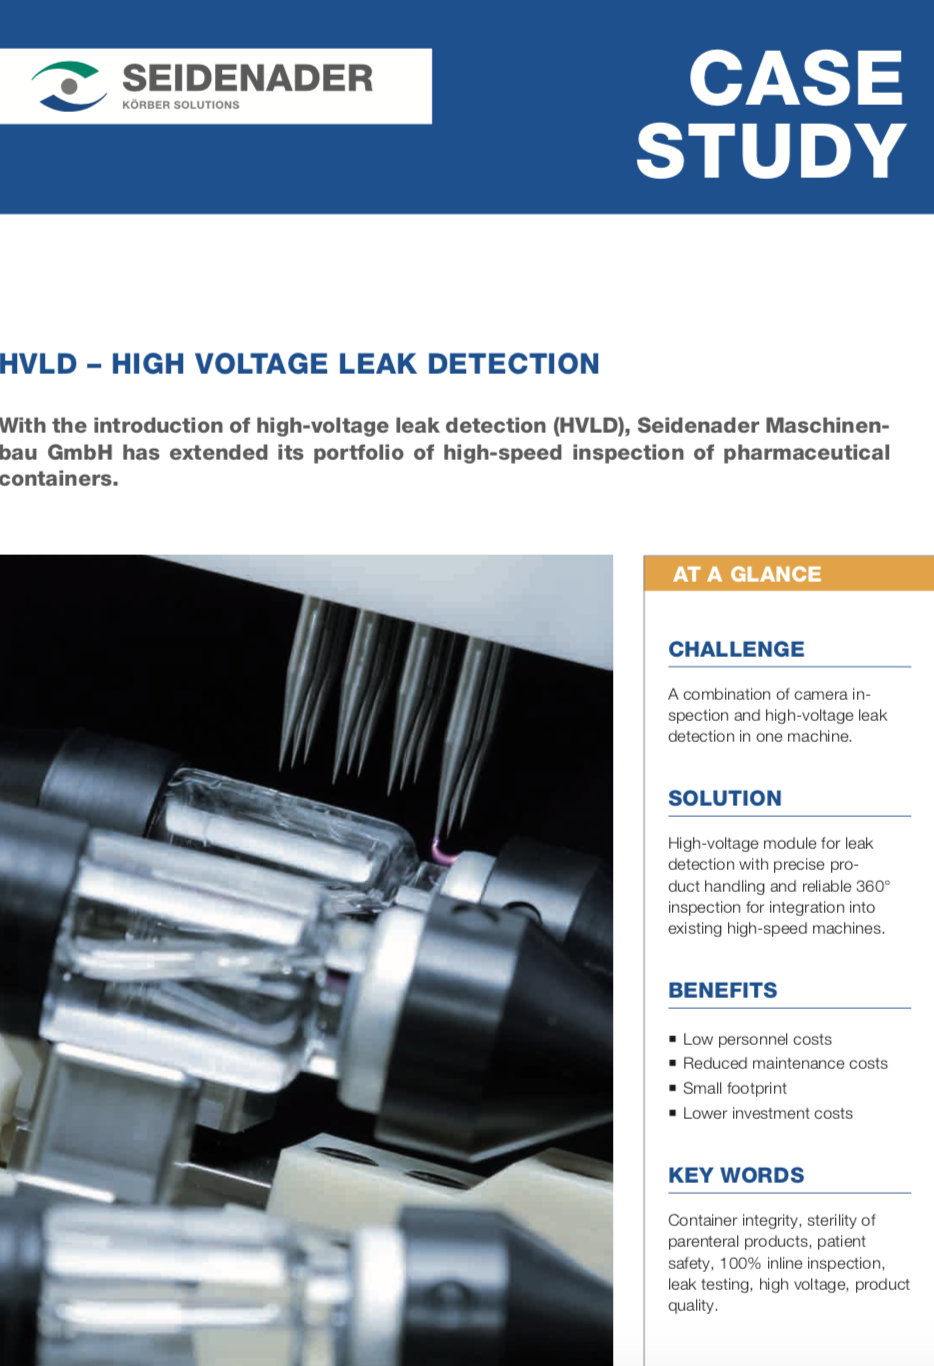 Seidenader High Voltage Leak Detection Case Study